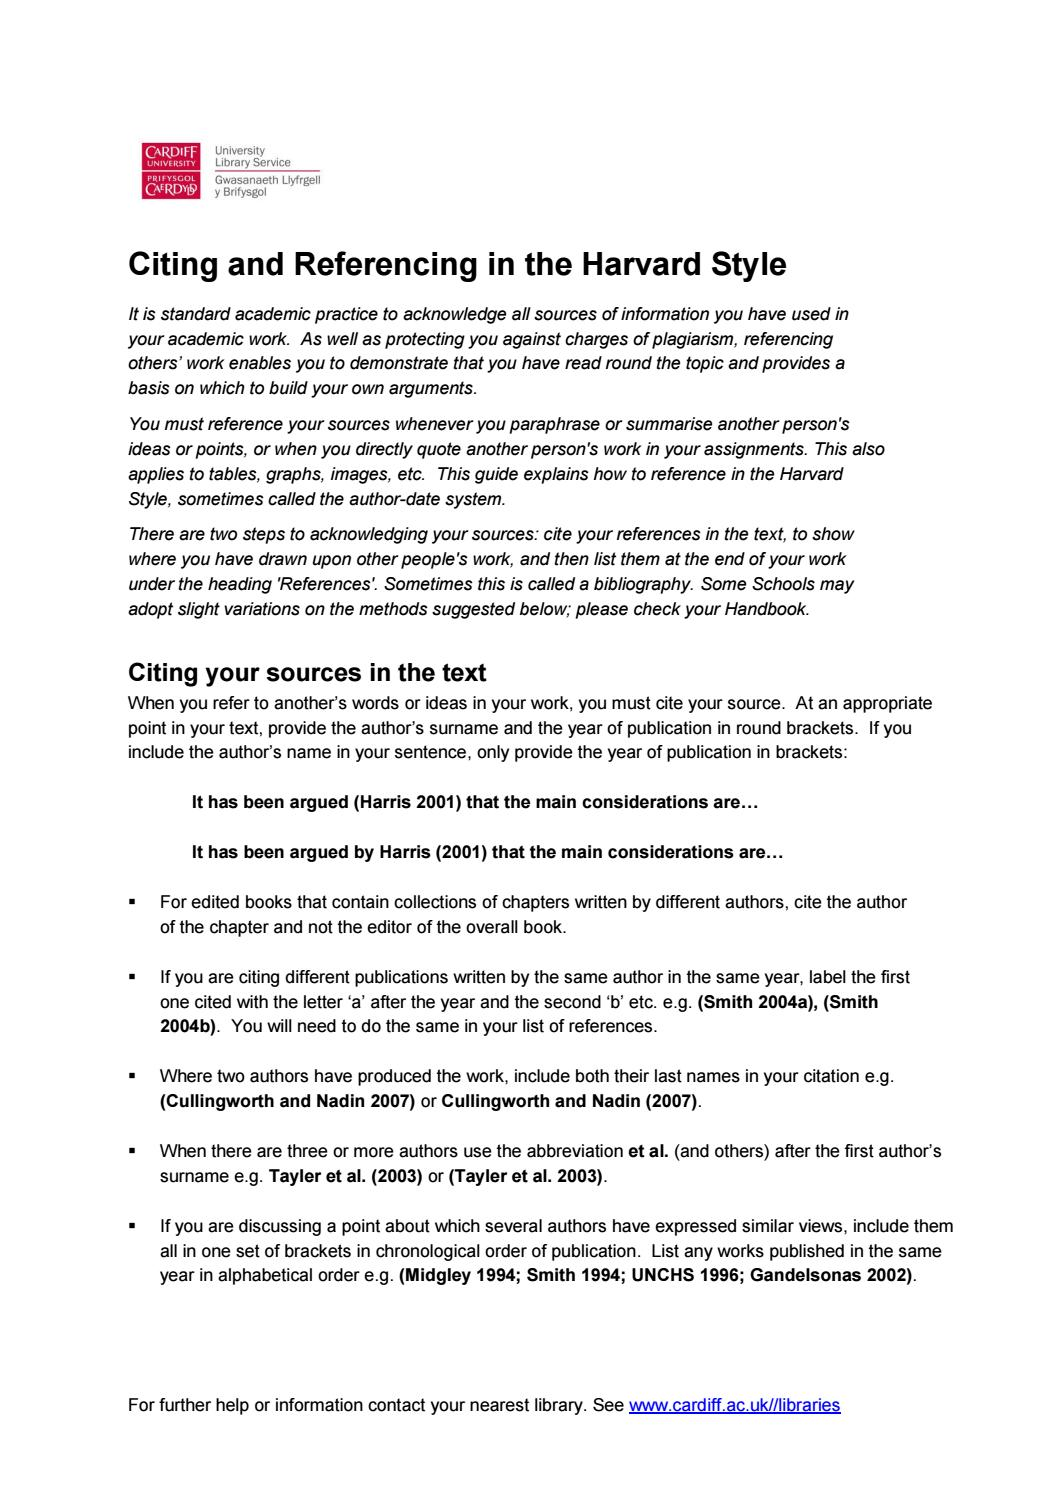 Citing And Referencing In The Harvard Style By Hcare Library Guides Cardiff  University Issuu How To Properly Cite A Paper